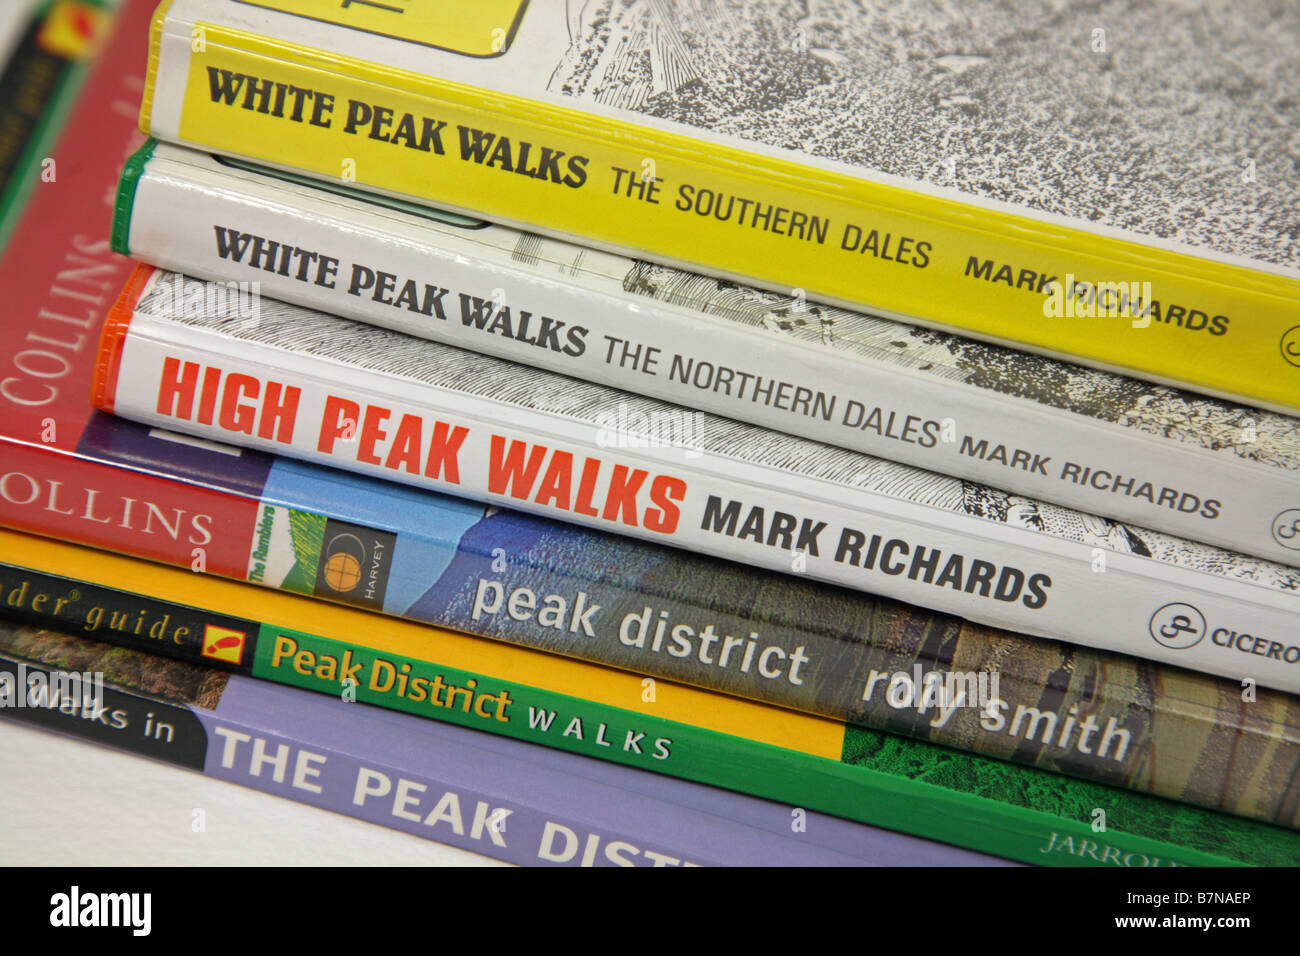 Peak District walking guide books in a pile or stack - Stock Image